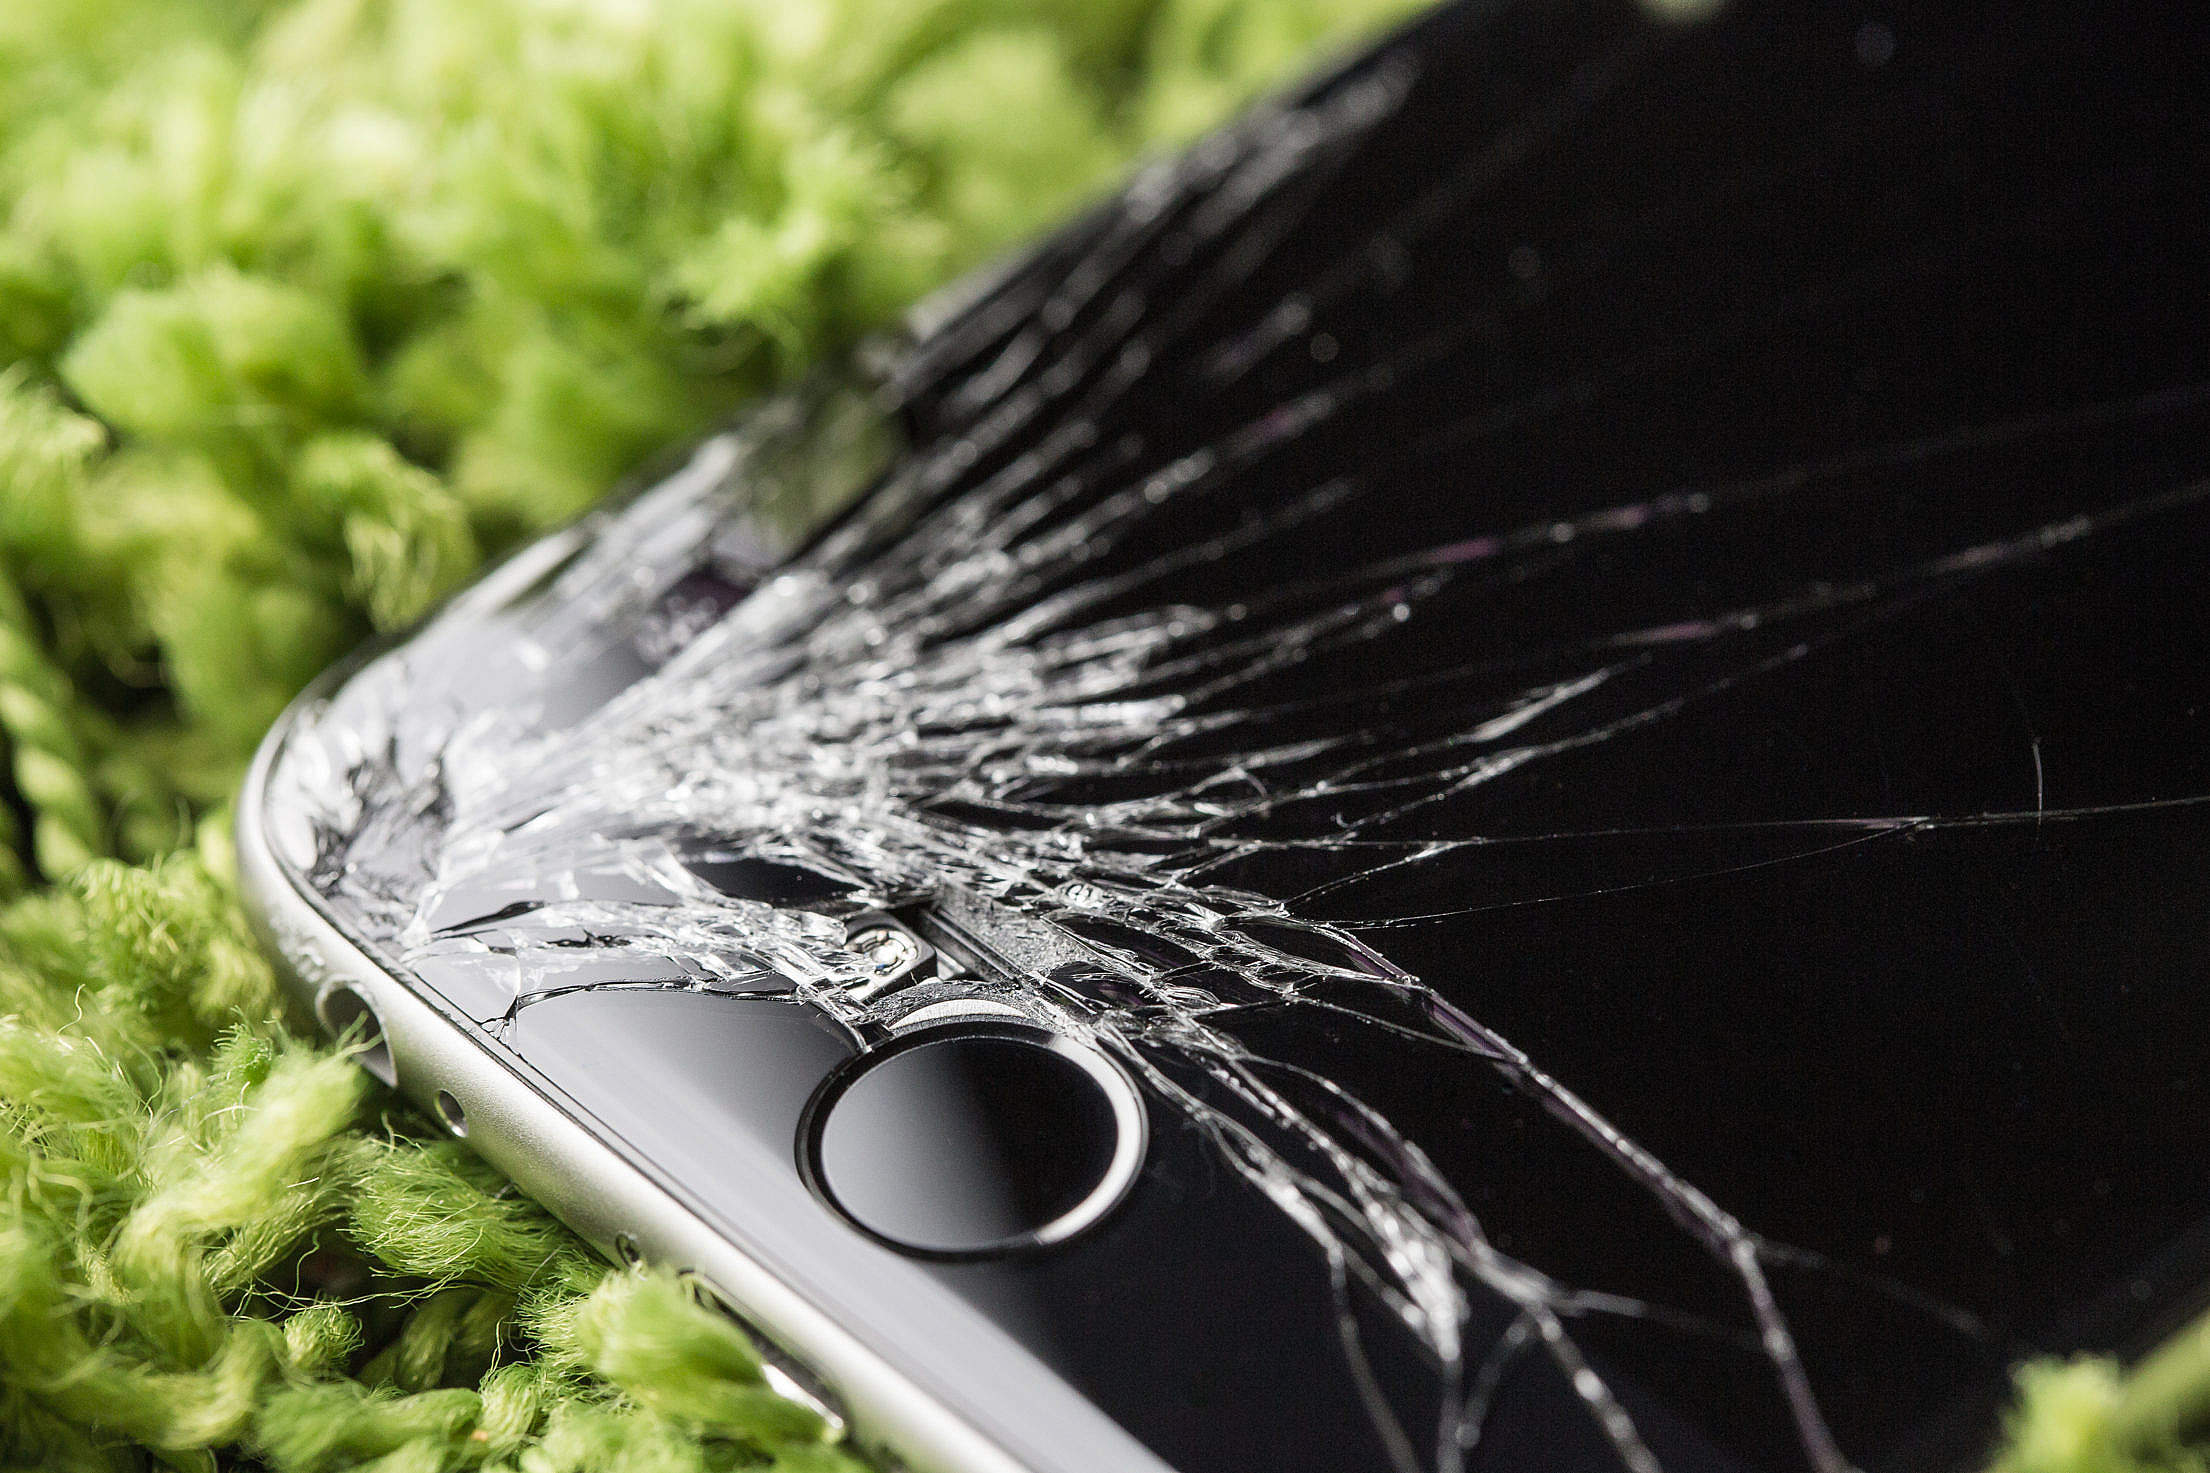 Dropped iPhone 6 with Cracked Screen Close Up Free Stock Photo